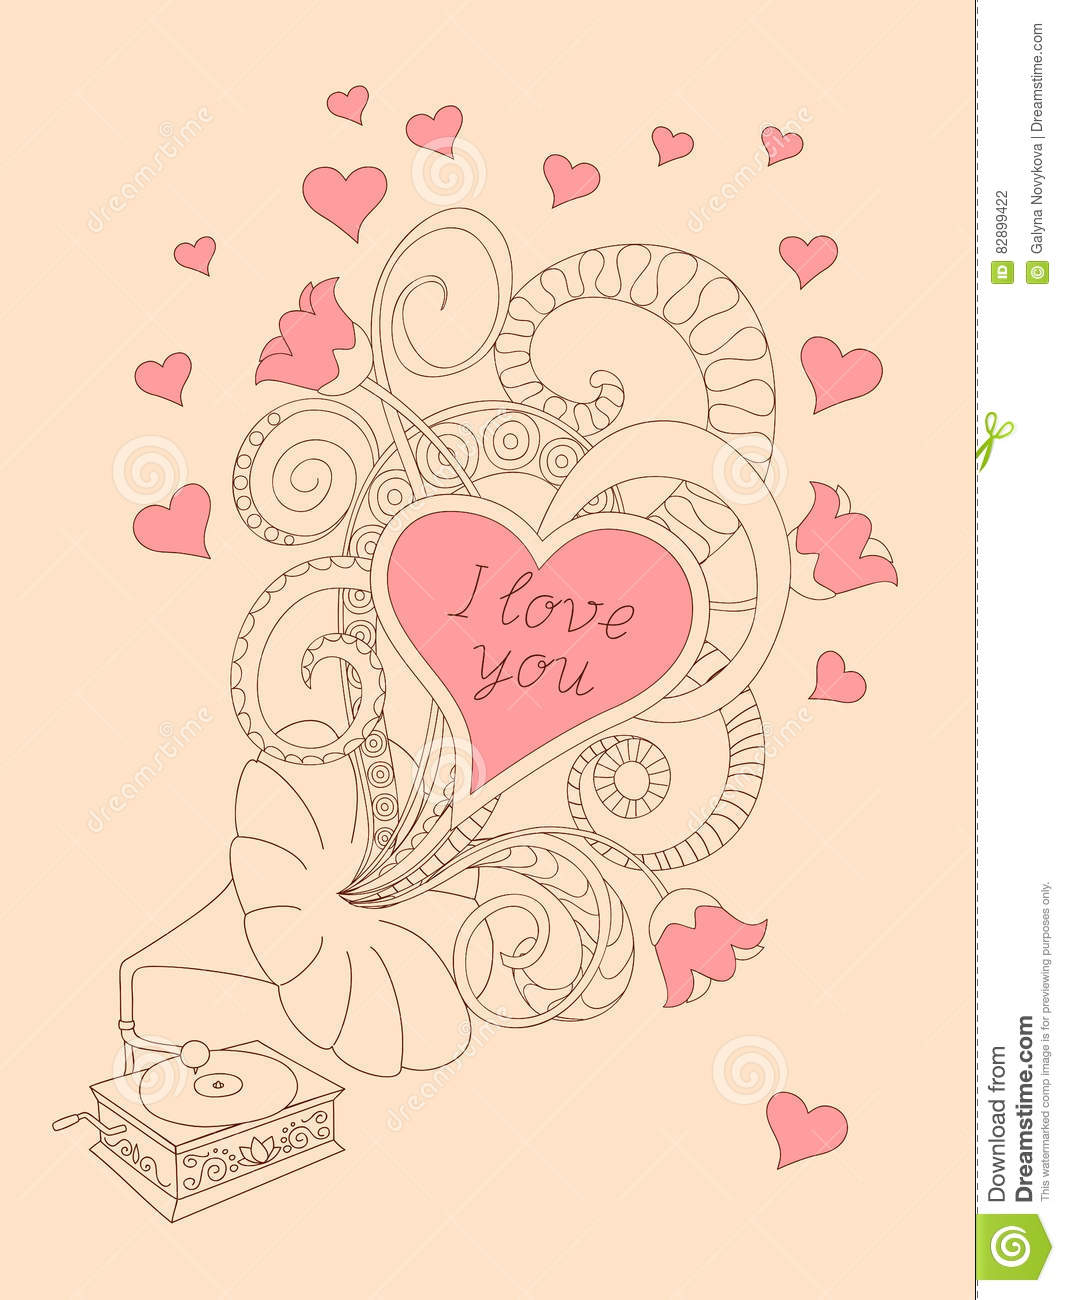 Music Love You Stock Vector Illustration Of Leaflet 82899422